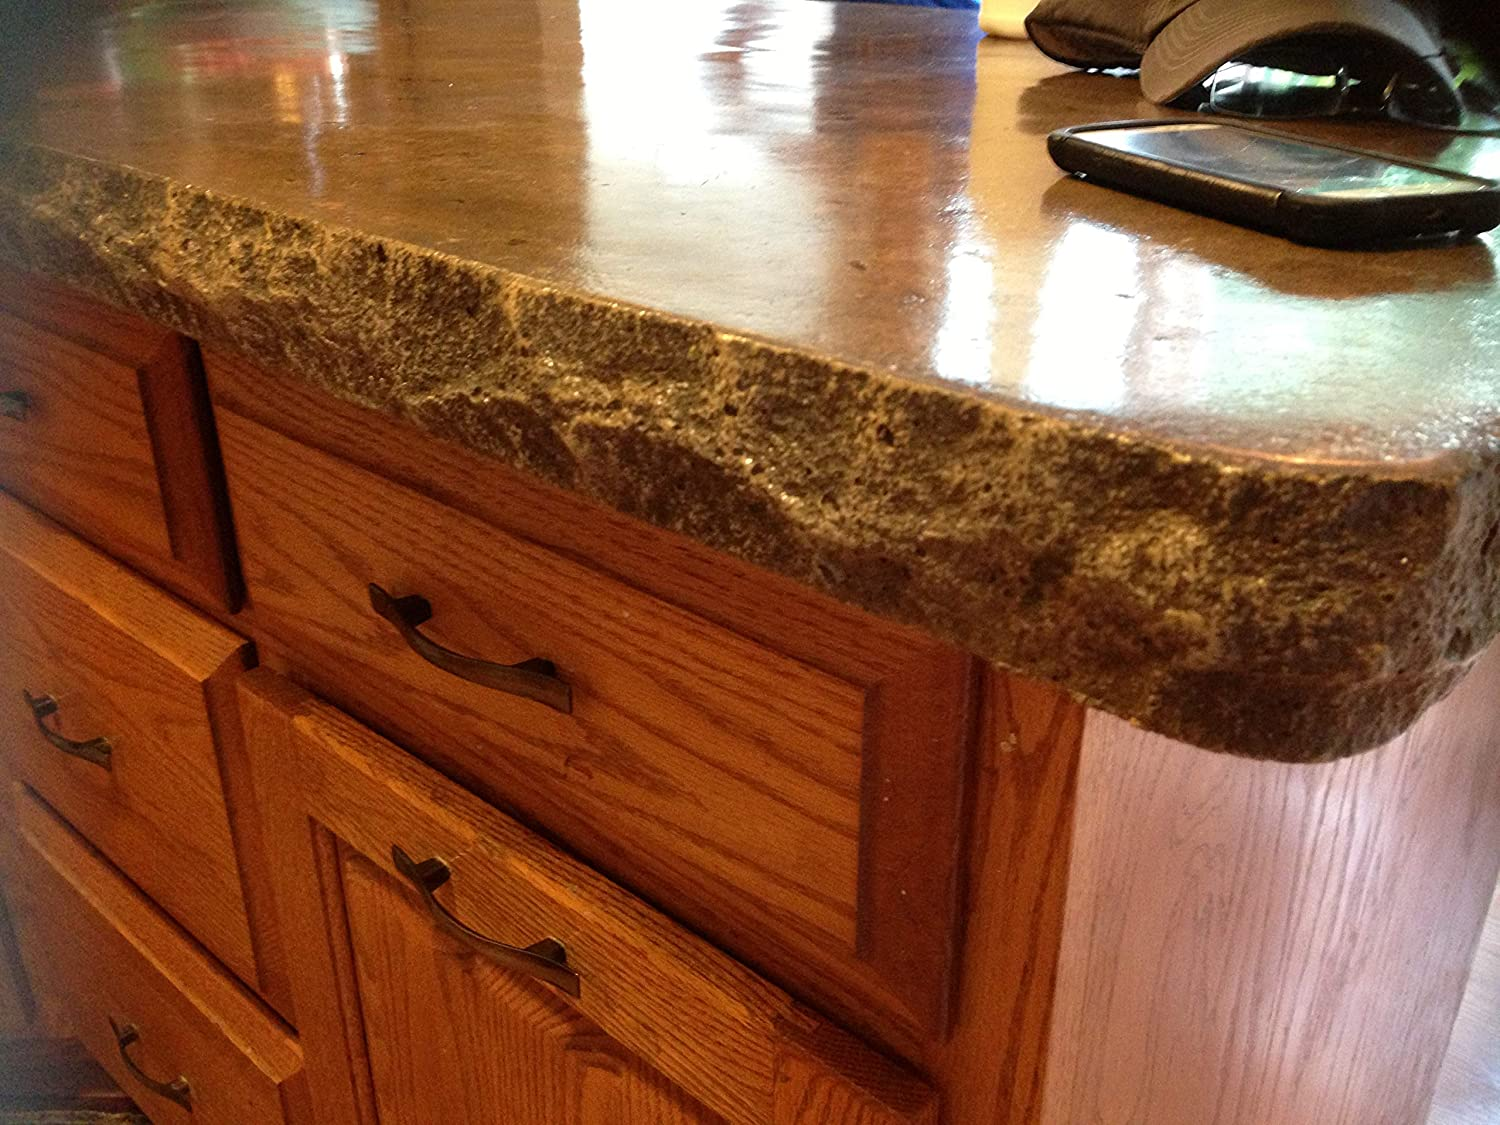 Concrete Countertop Edge Form Standard Split Stone Amazon Com